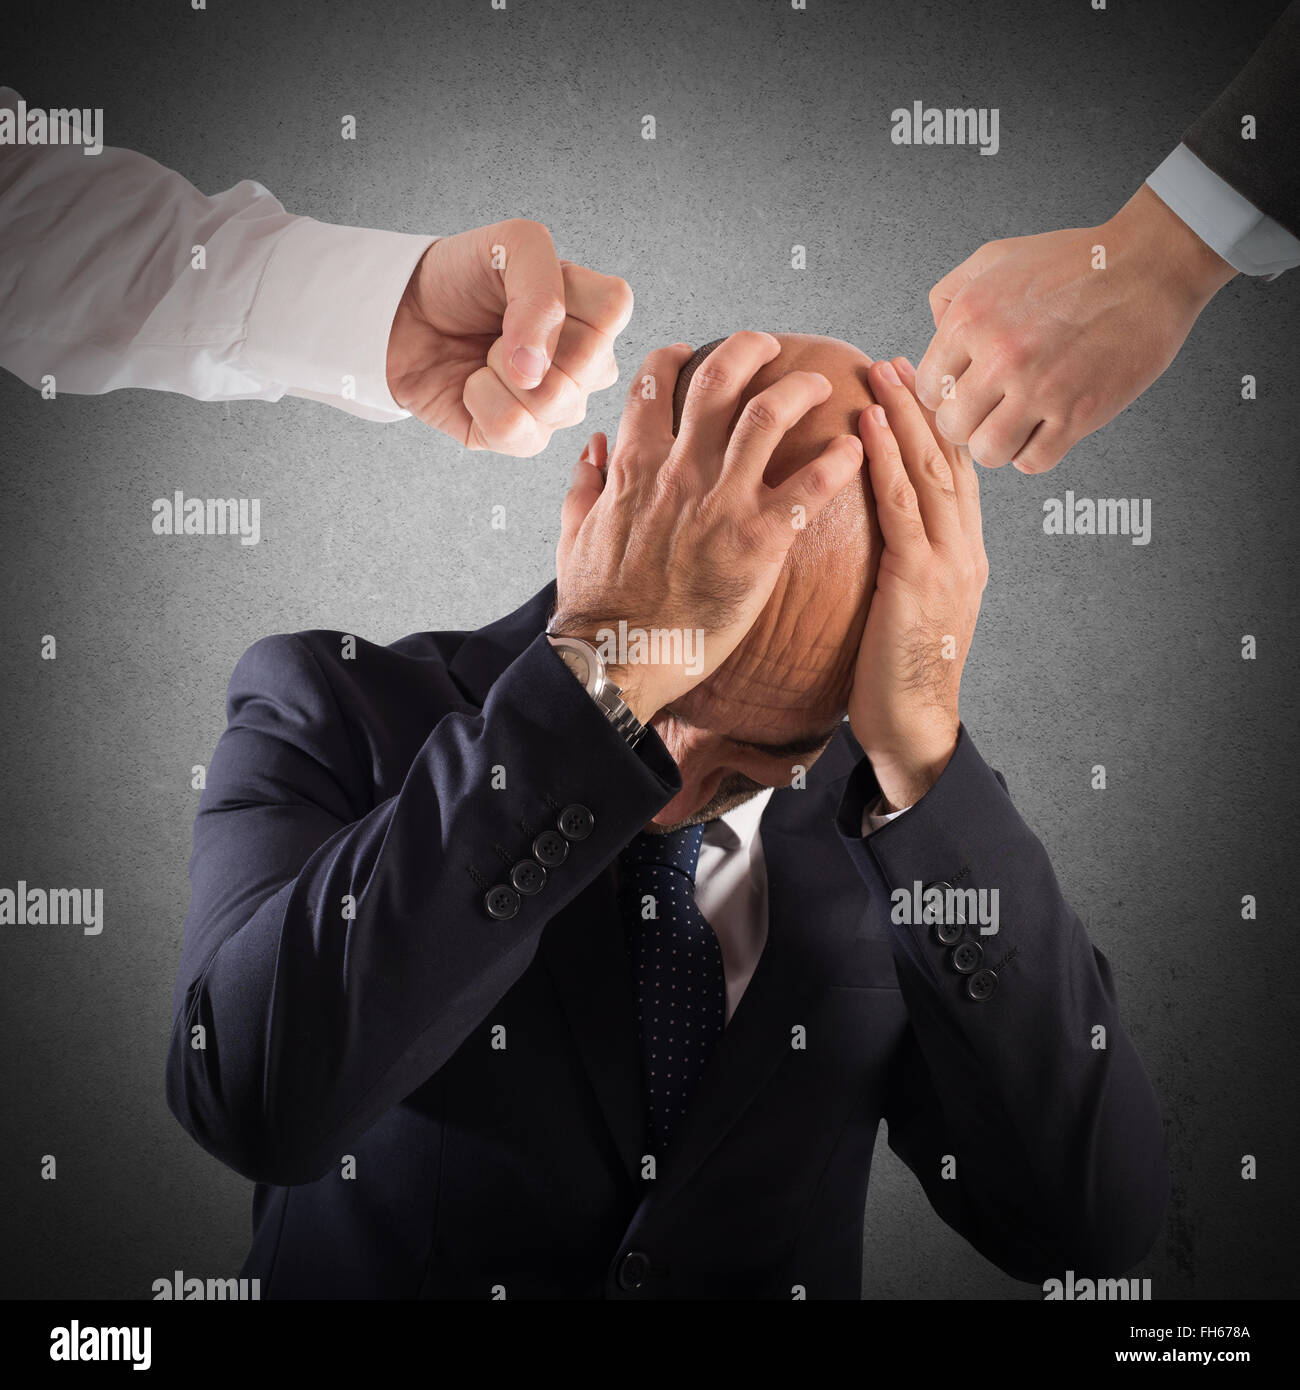 Injustice for an  employee - Stock Image